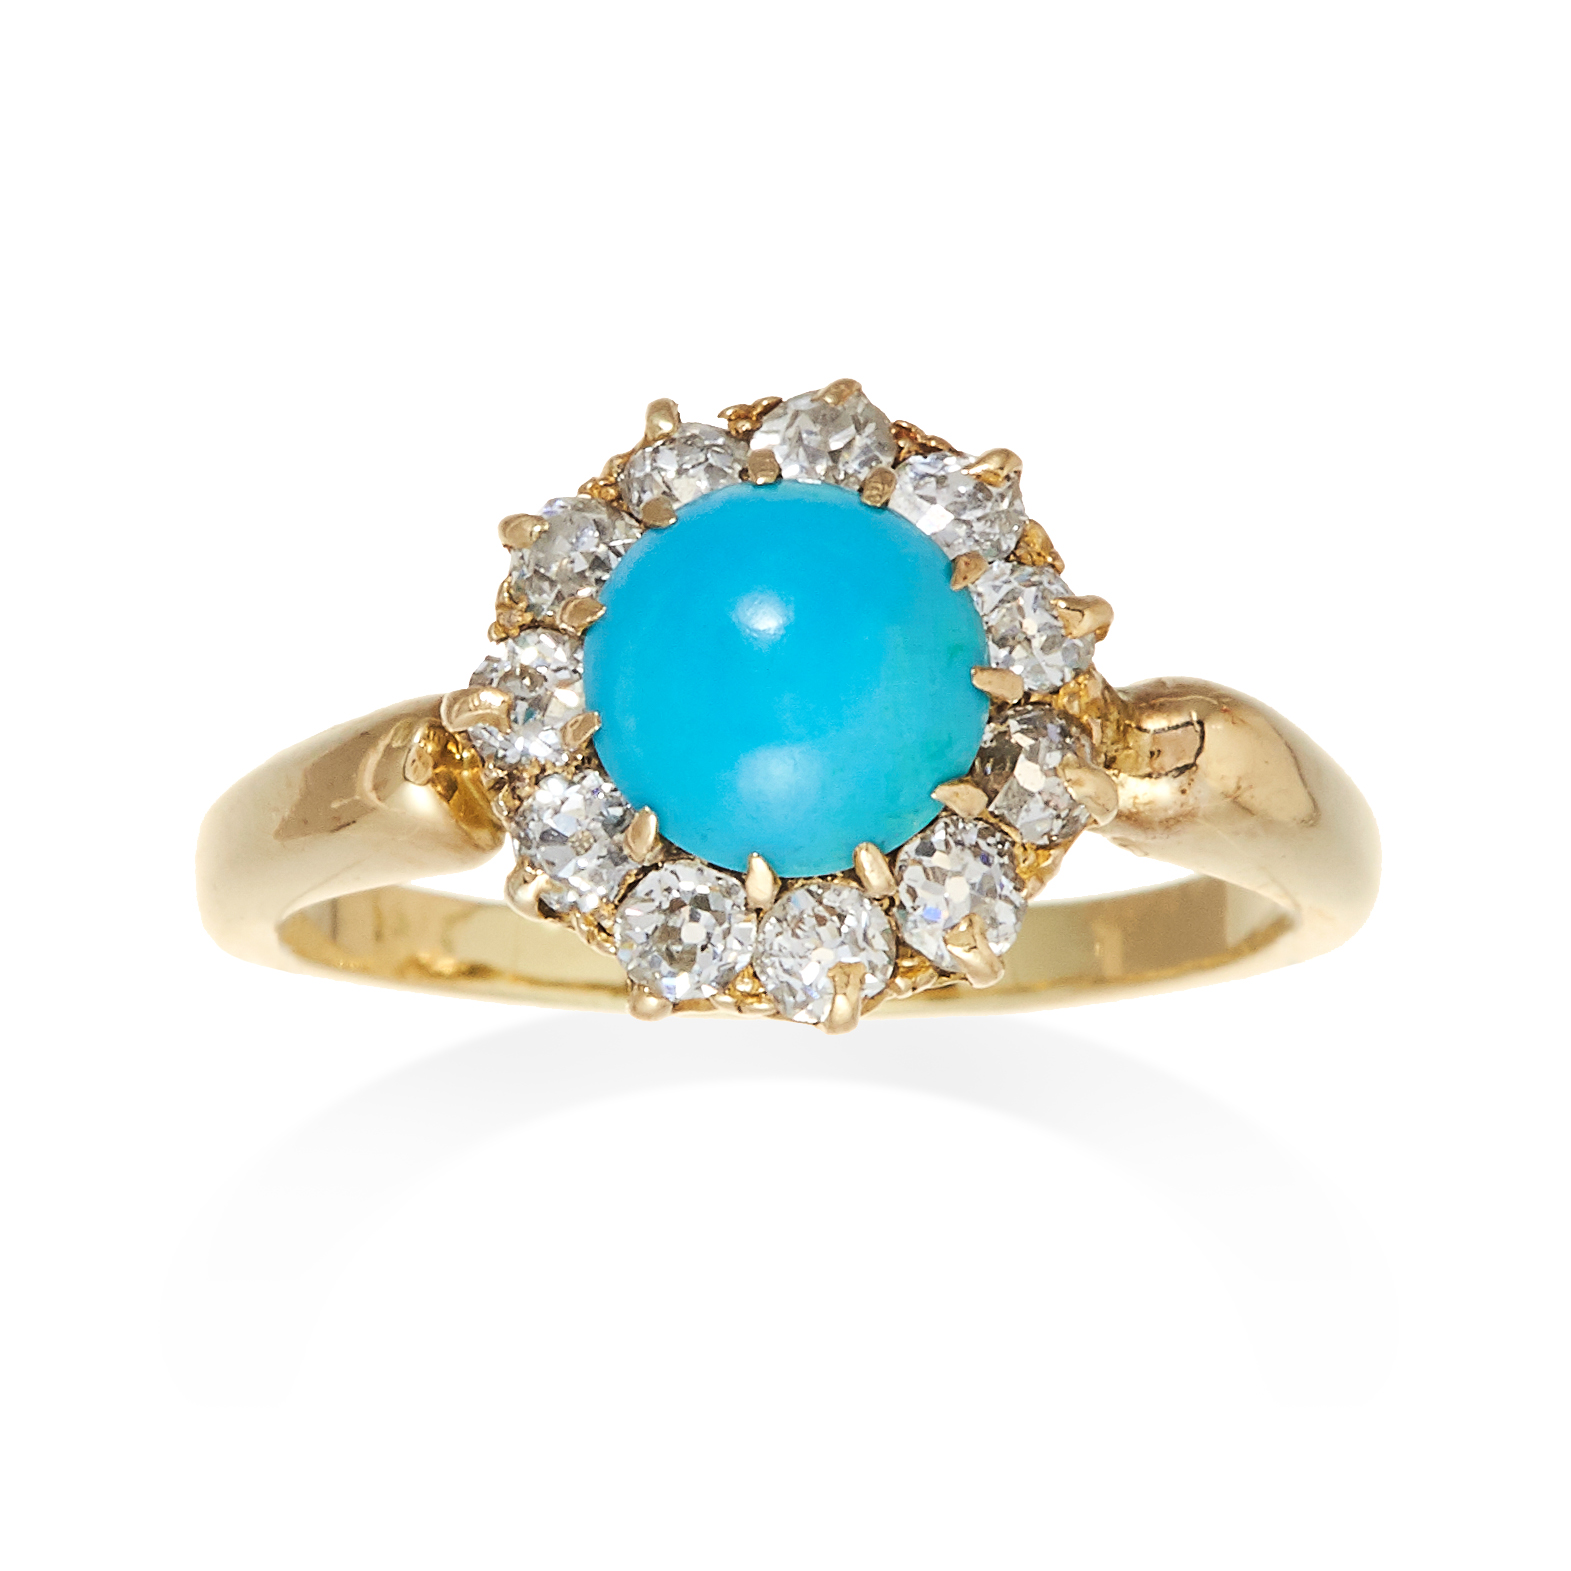 A TURQUOISE AND DIAMOND CLUSTER RING in yellow gold, set with a central cabochon turquoise and